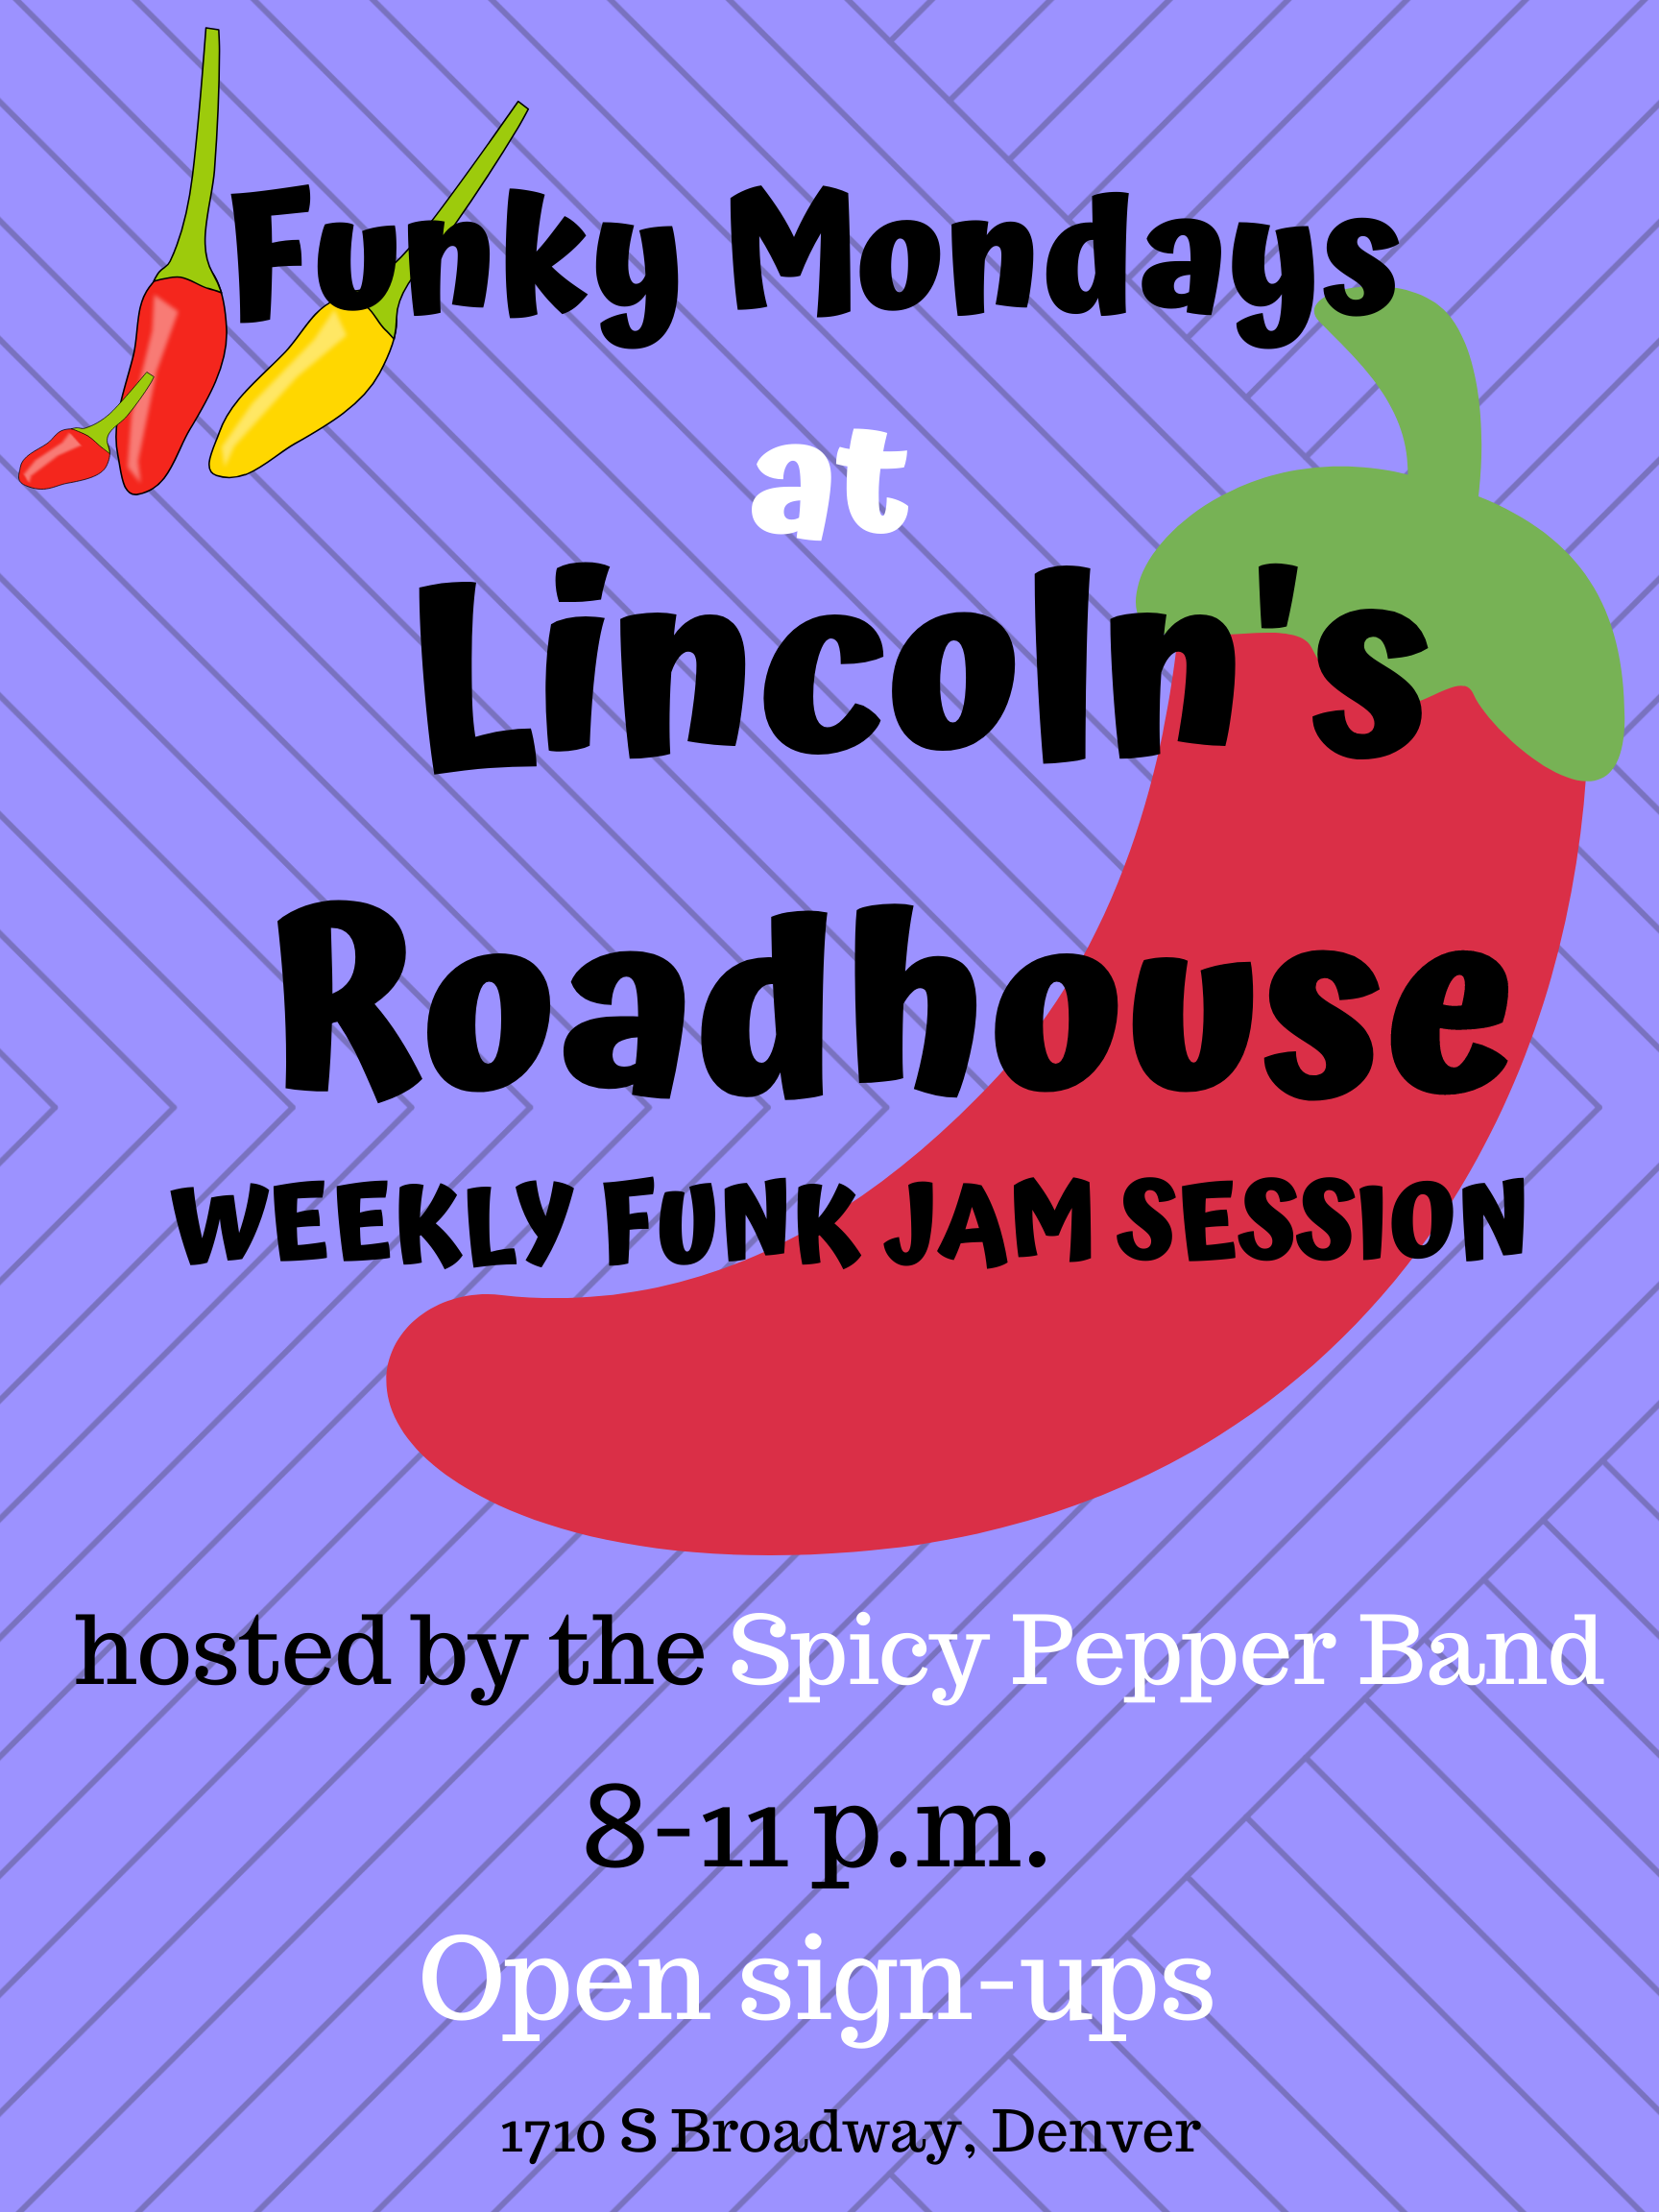 Funky Mondays Jam Session at Lincoln's Roadhouse